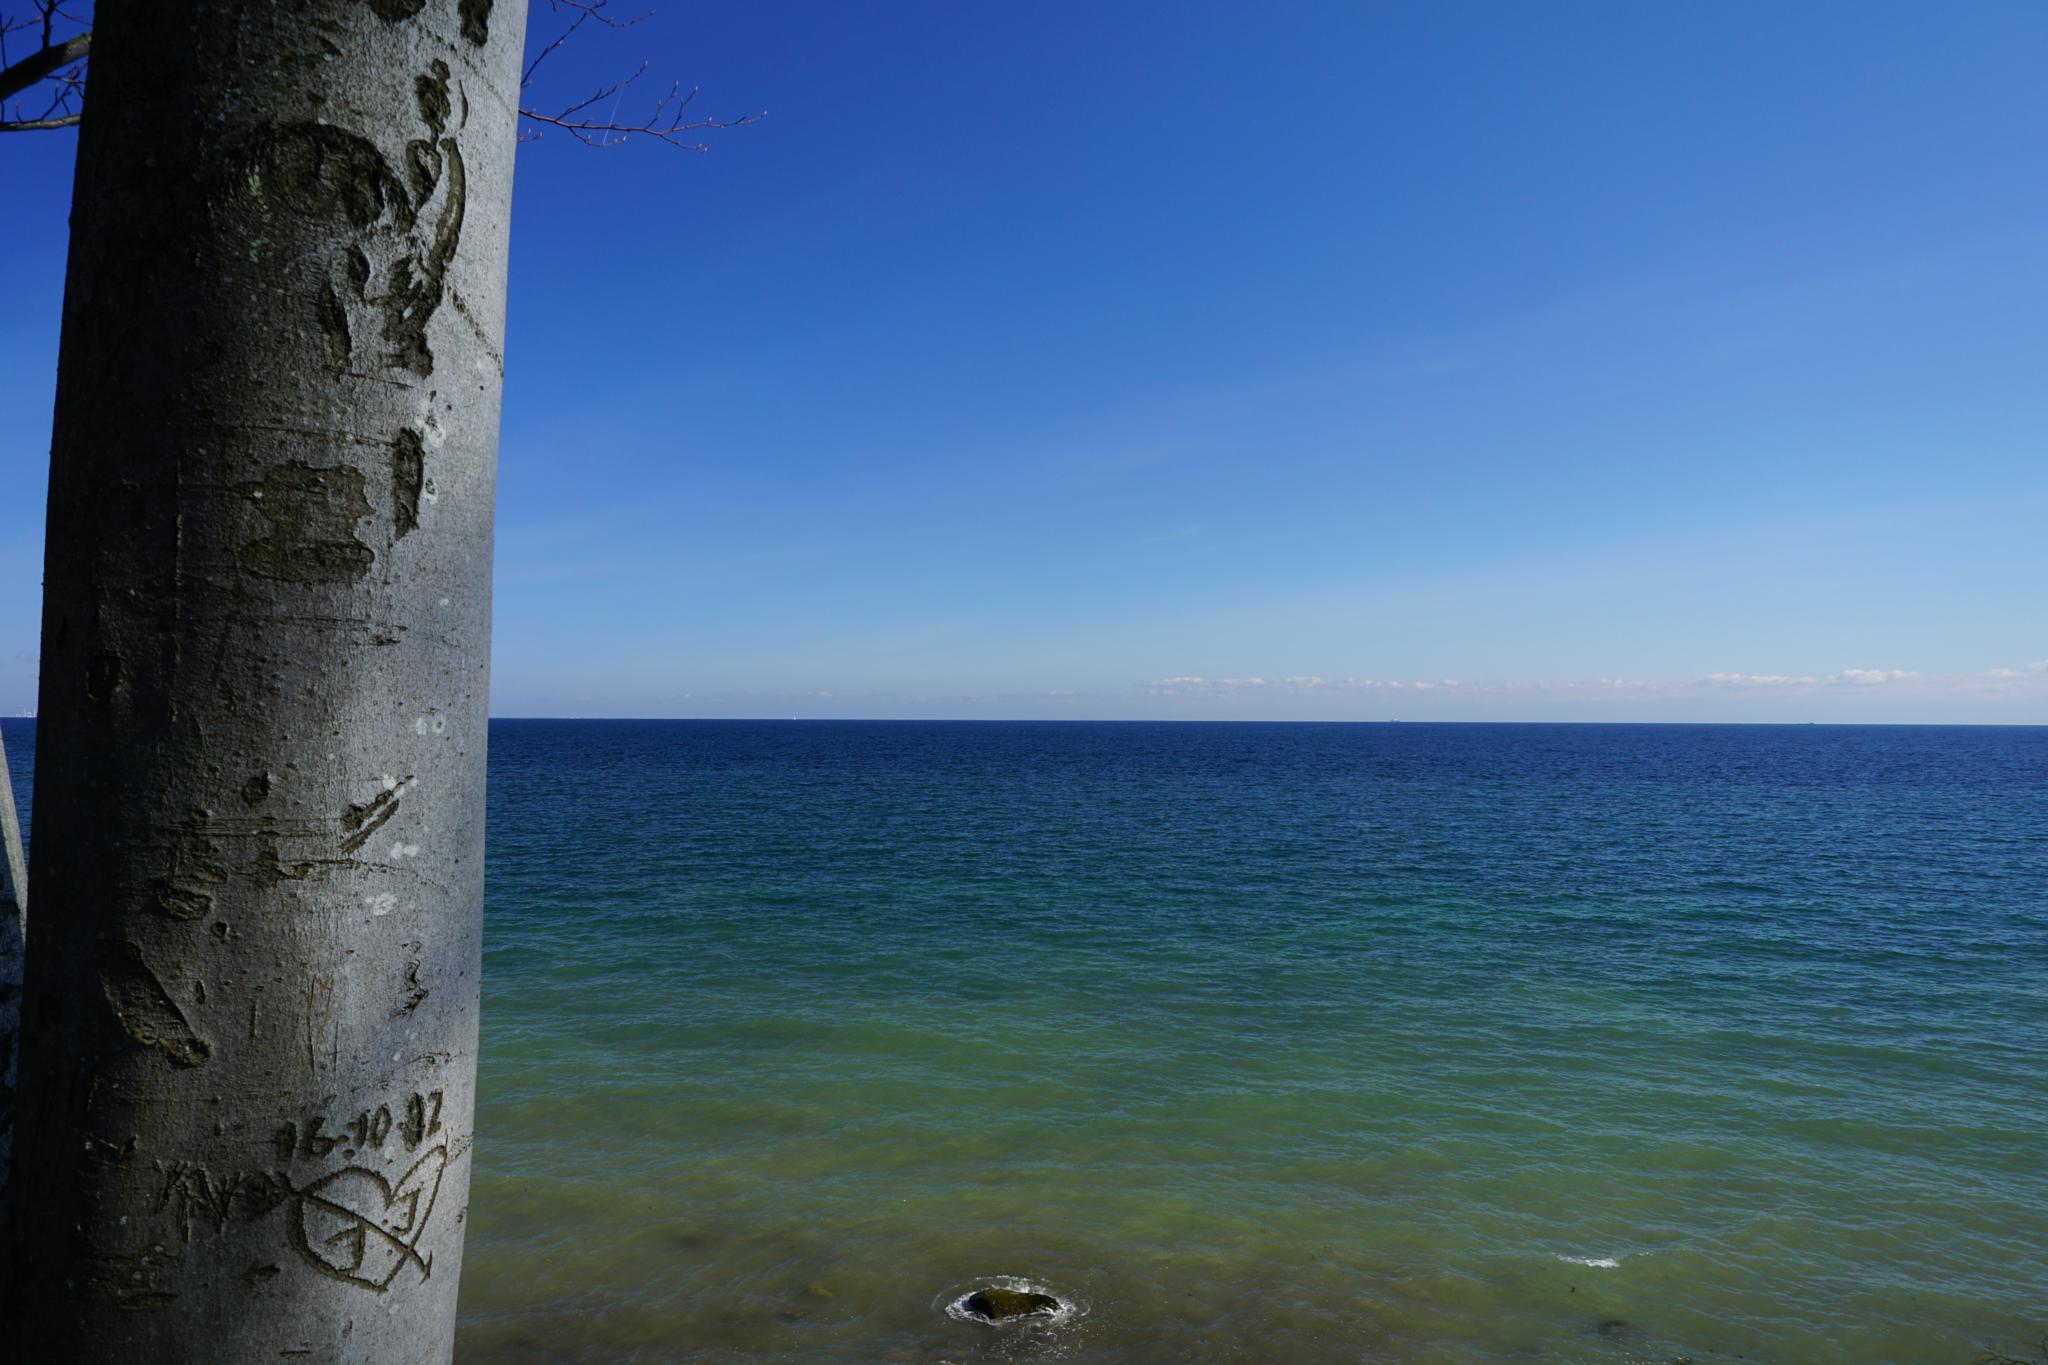 View over the sea by Dorte Hedengran